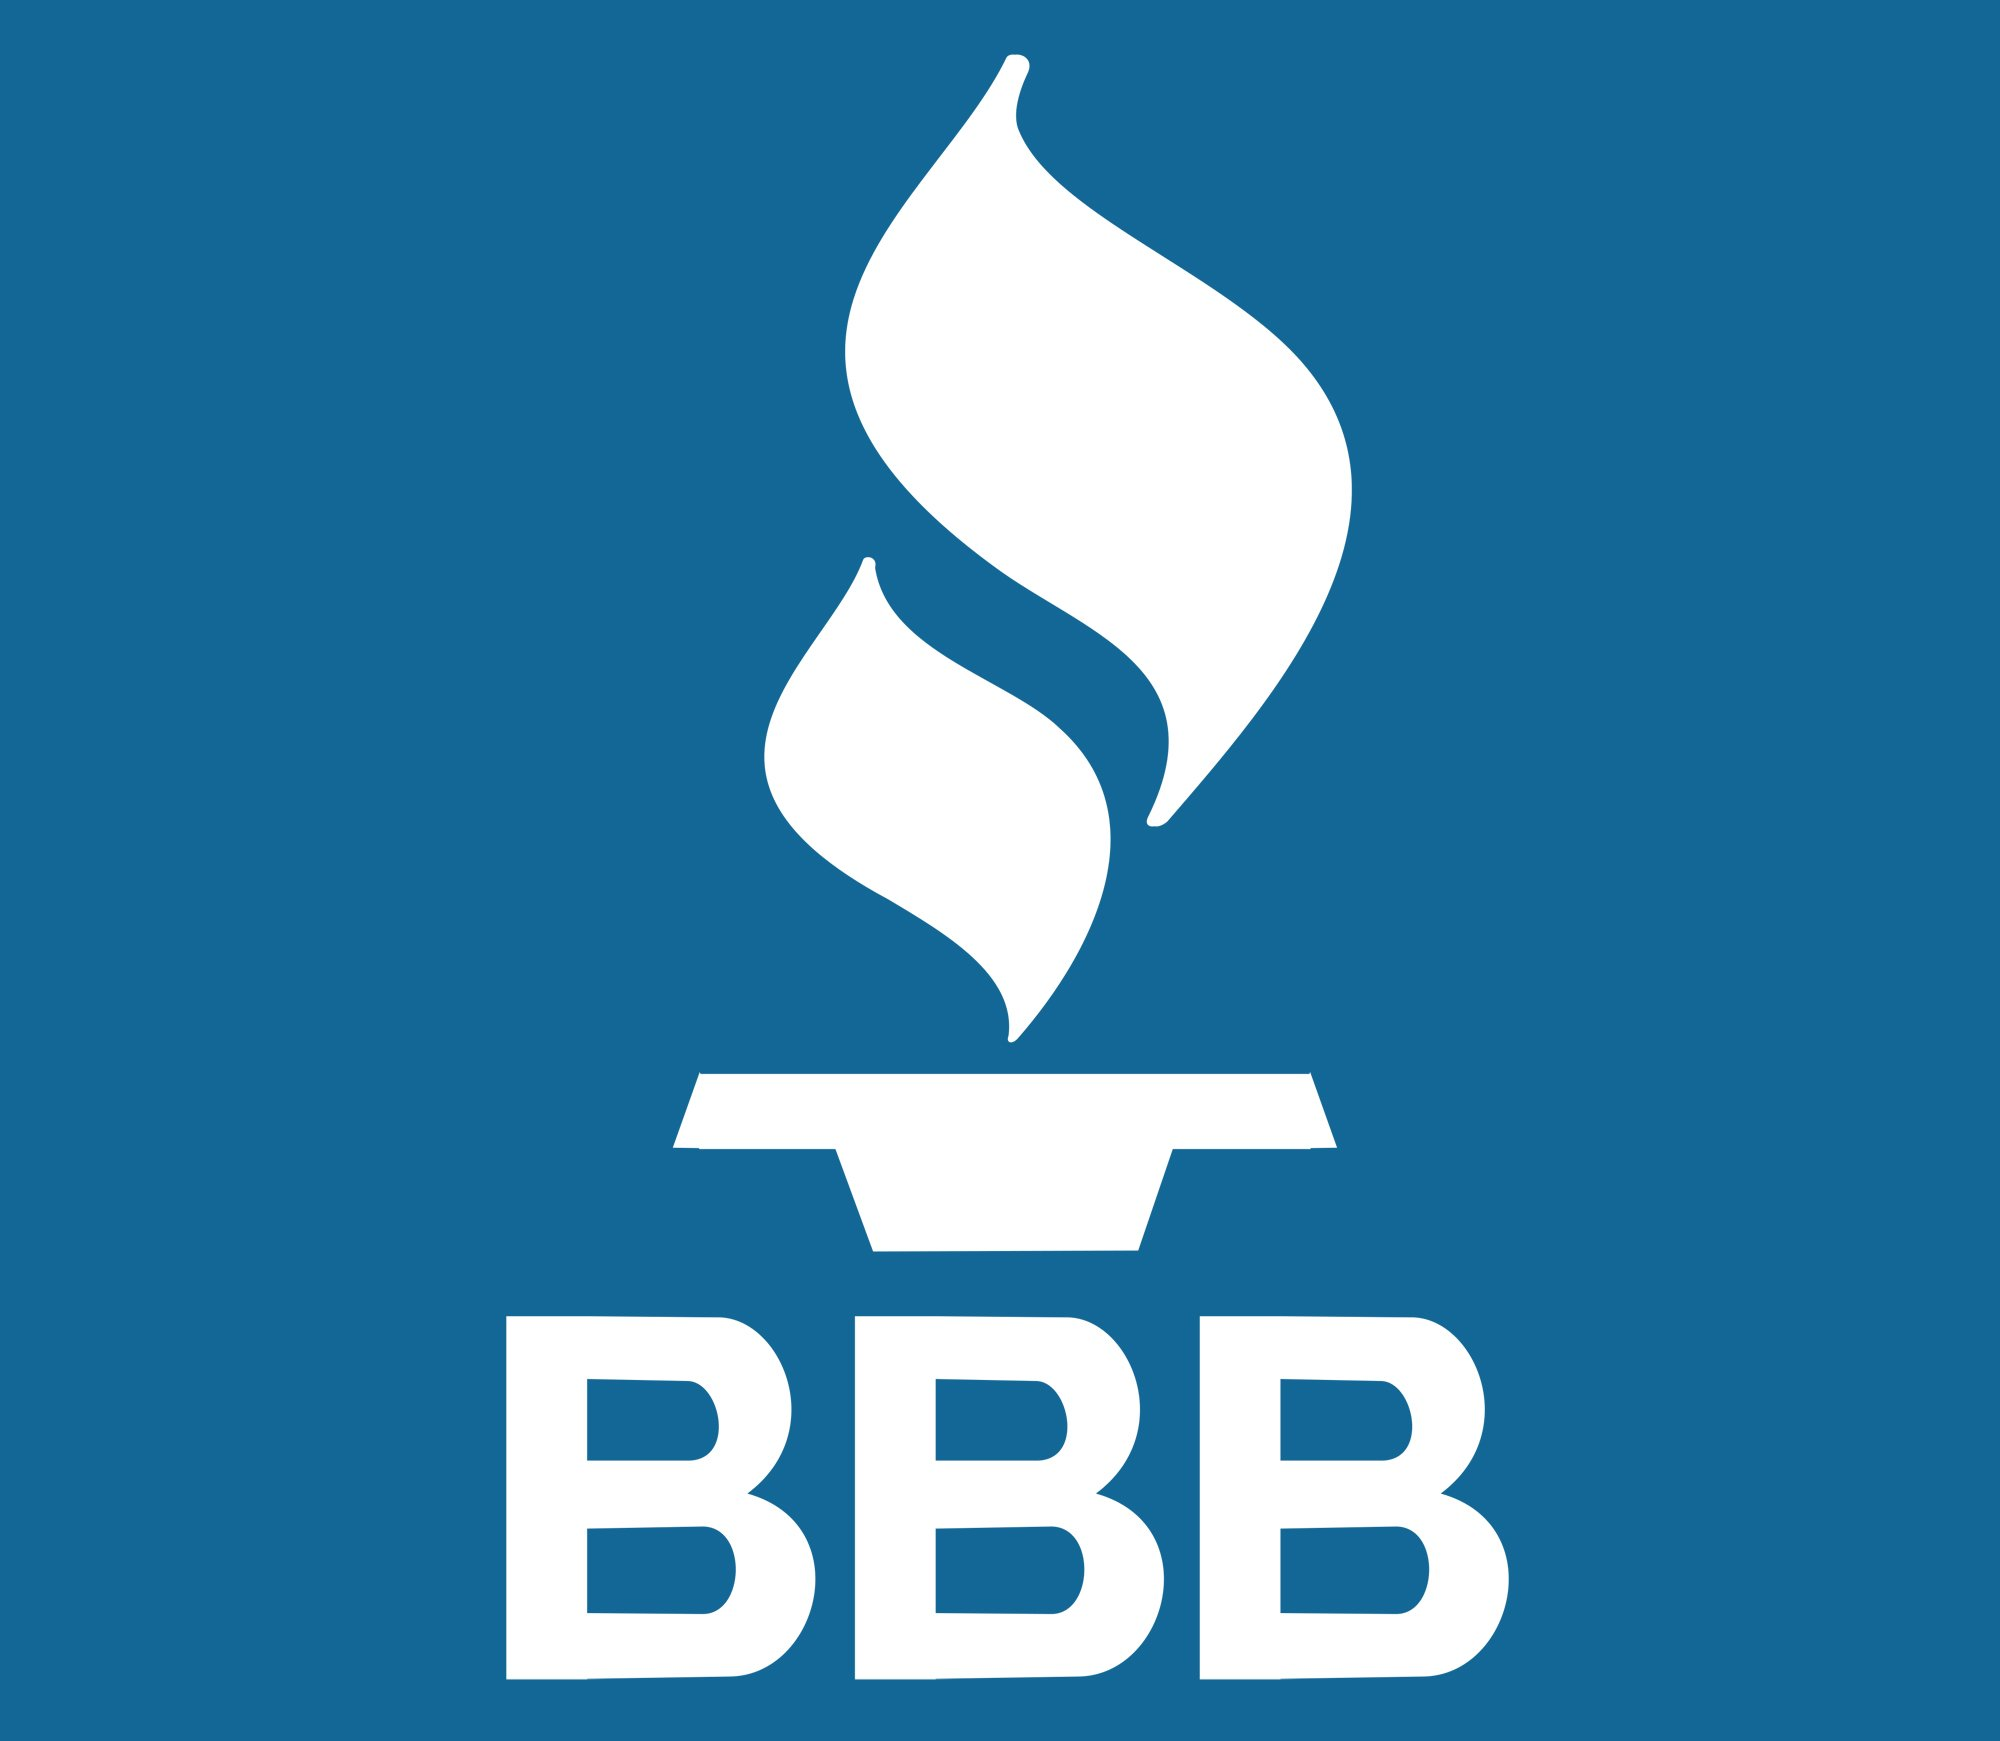 BBB Logo, BBB Symbol, Meaning, History and Evolution | 2000 x 1741 jpeg 361kB